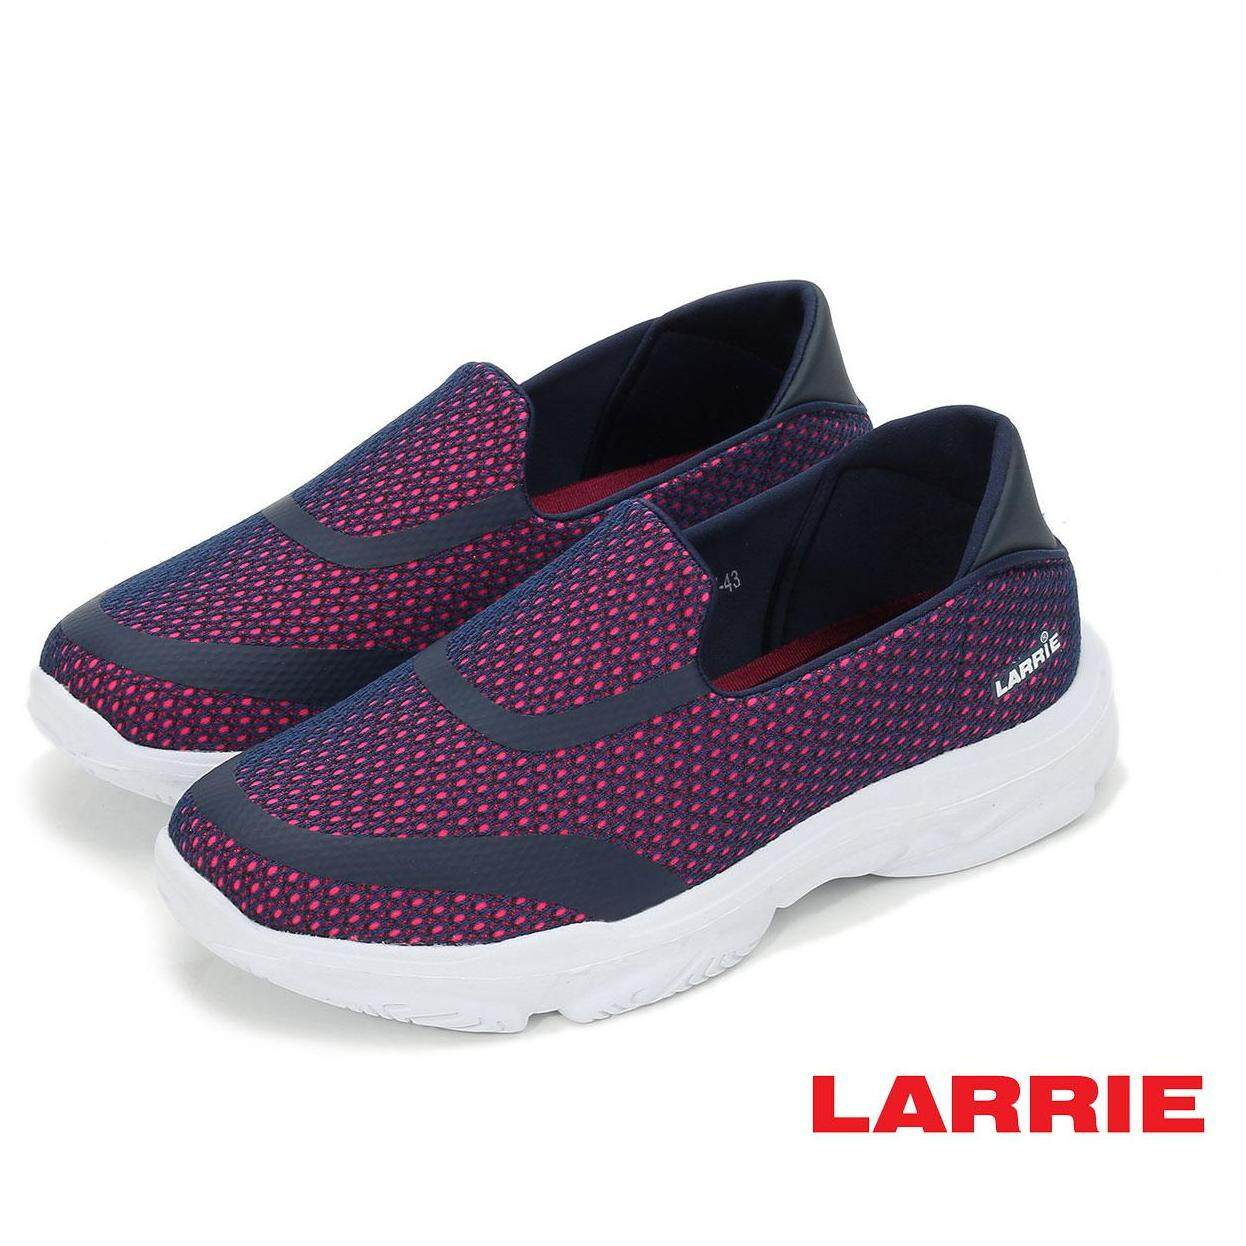 Larrie Satisfying Lightweight Sporty Sneakers - L61905-KN01SV